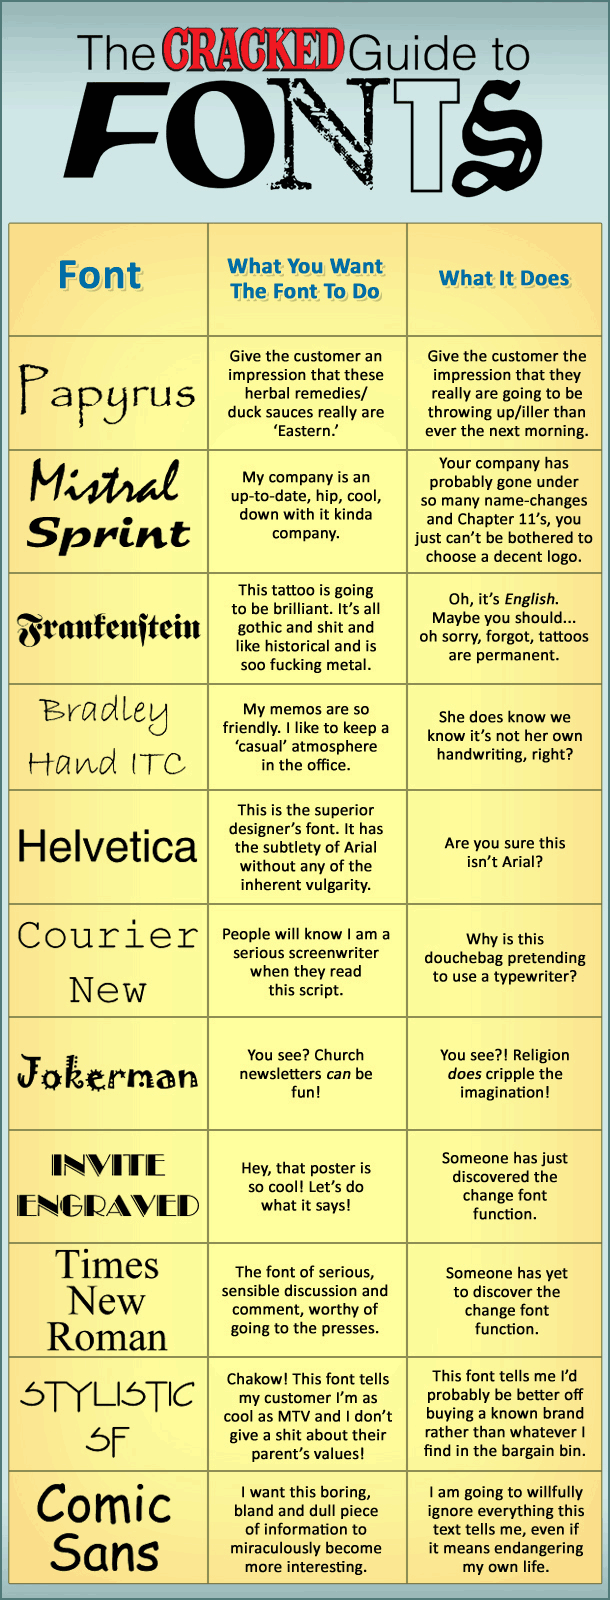 Cracked Guide to Fonts